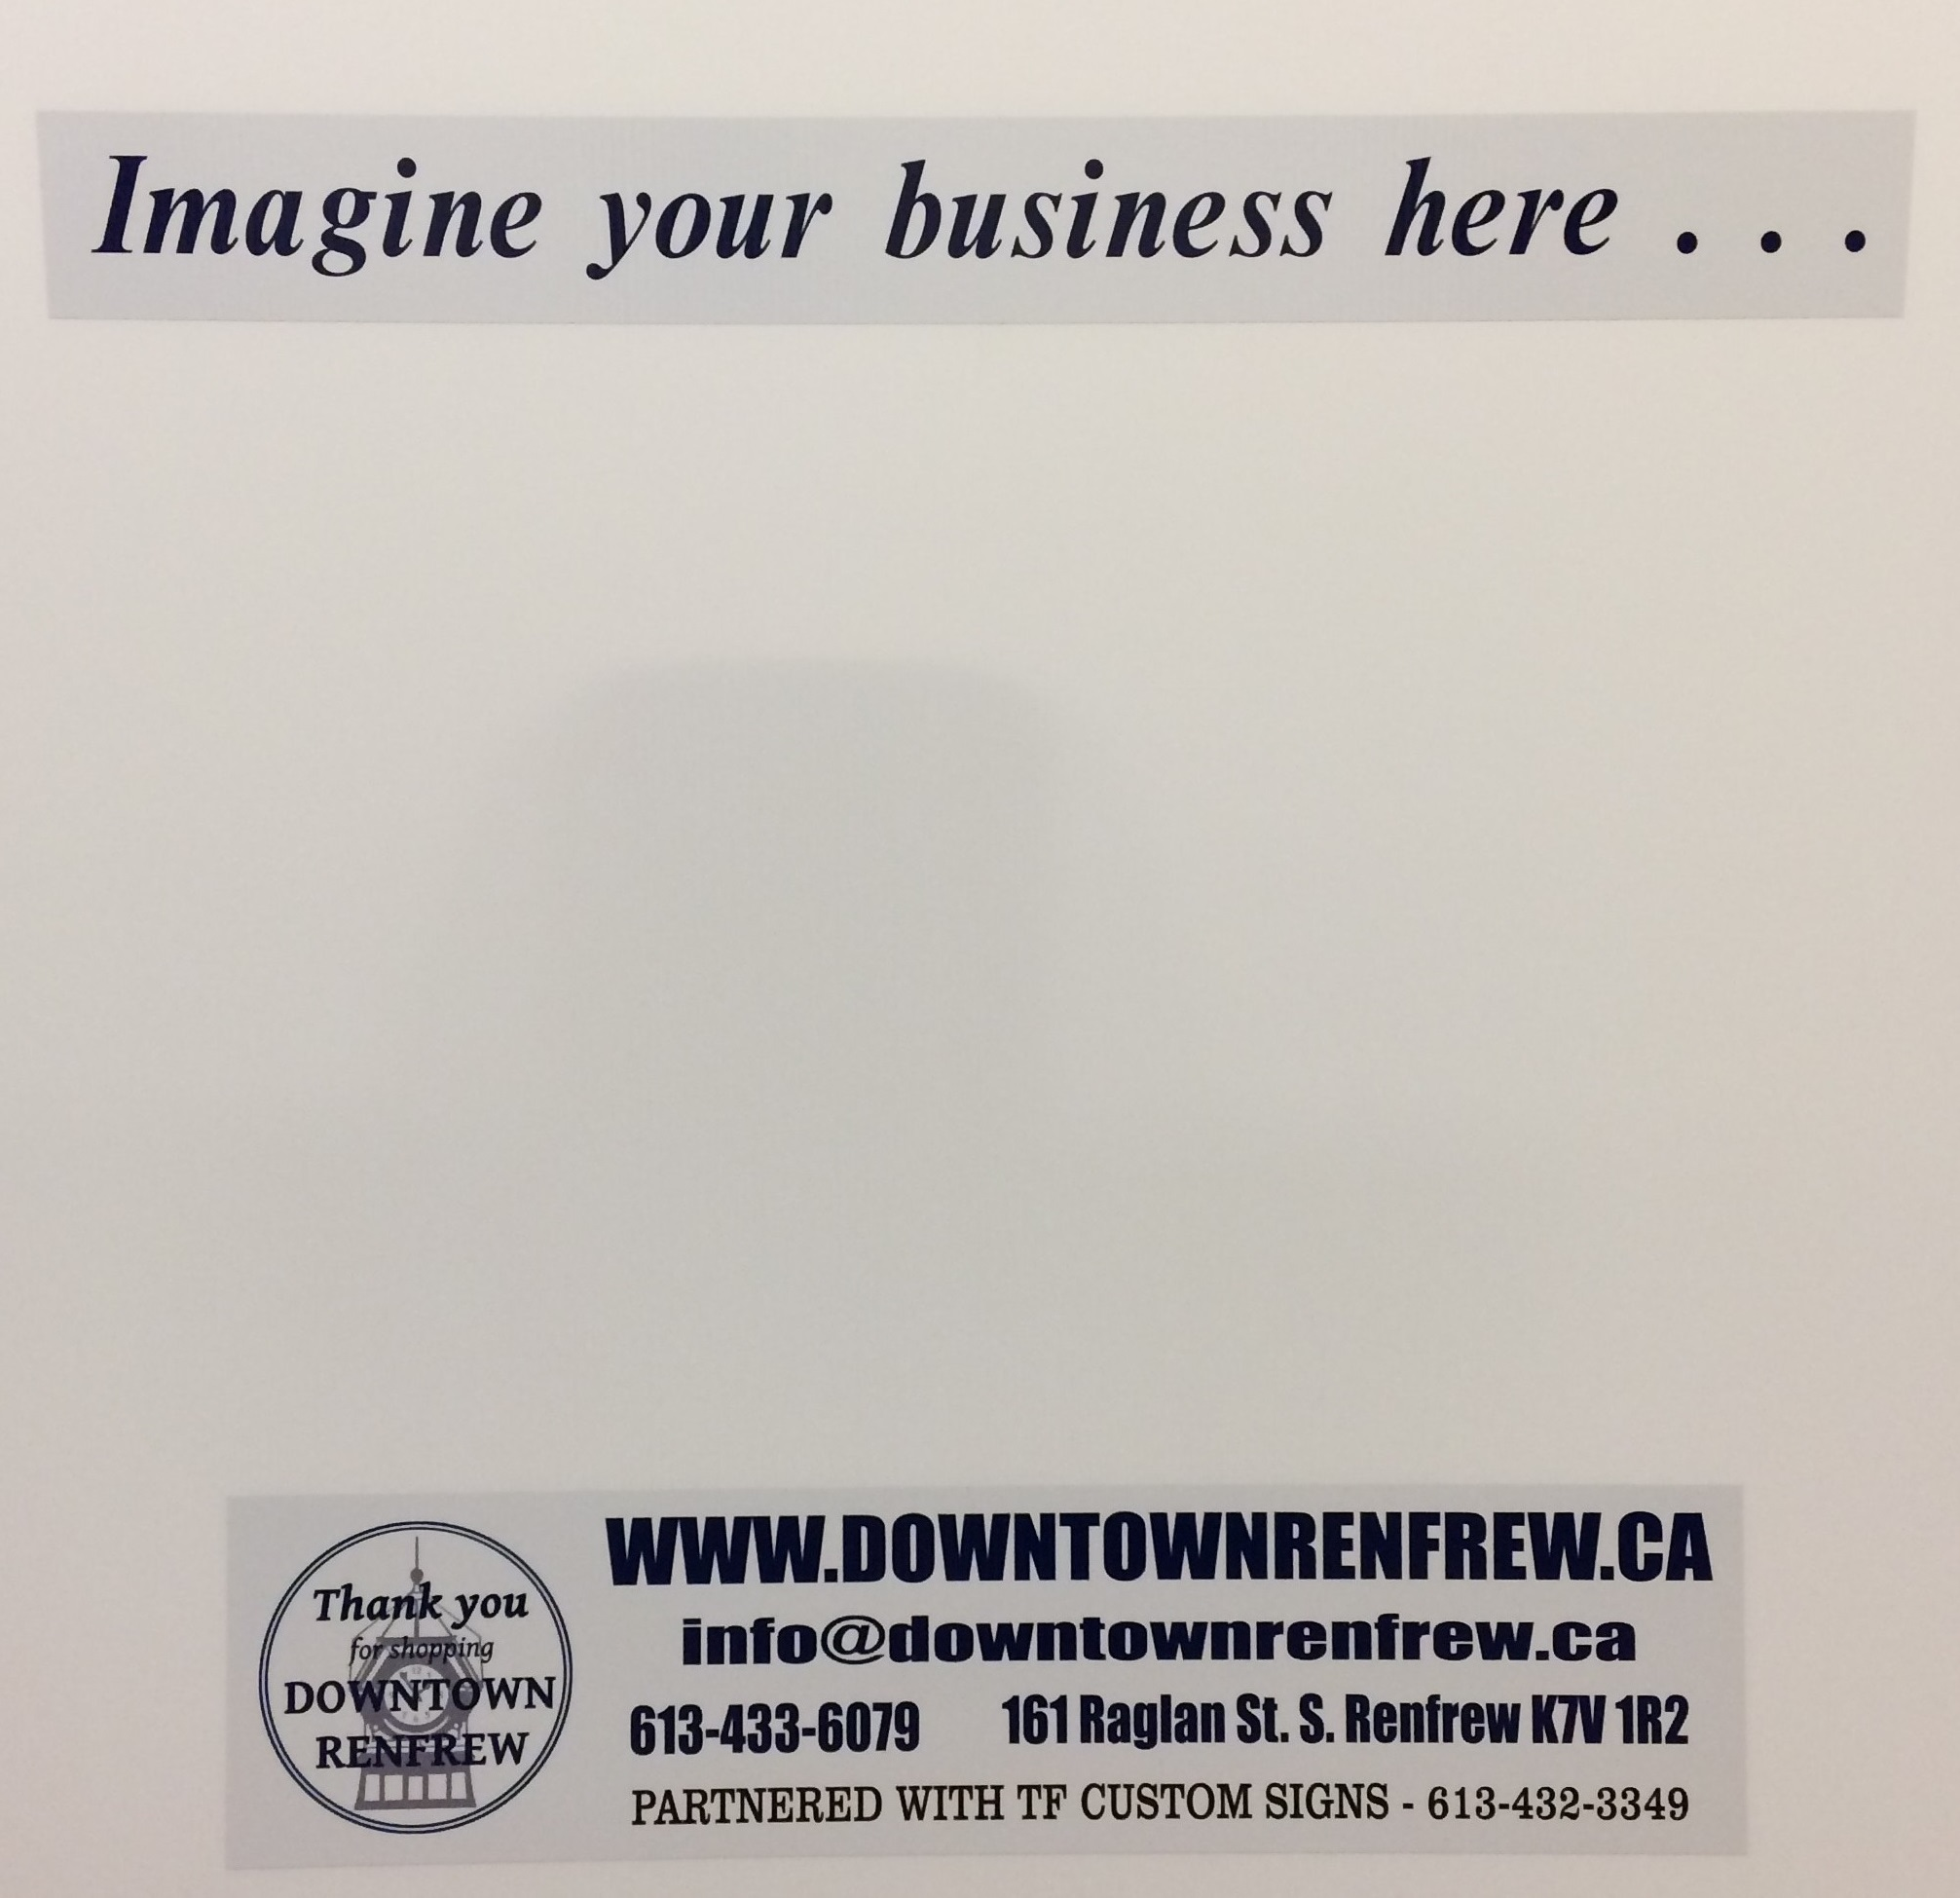 To learn more about Downtown Renfrew or about the Lease/Rent listings call 613-433-6079 or e-mail info@downtownrenfrew.ca